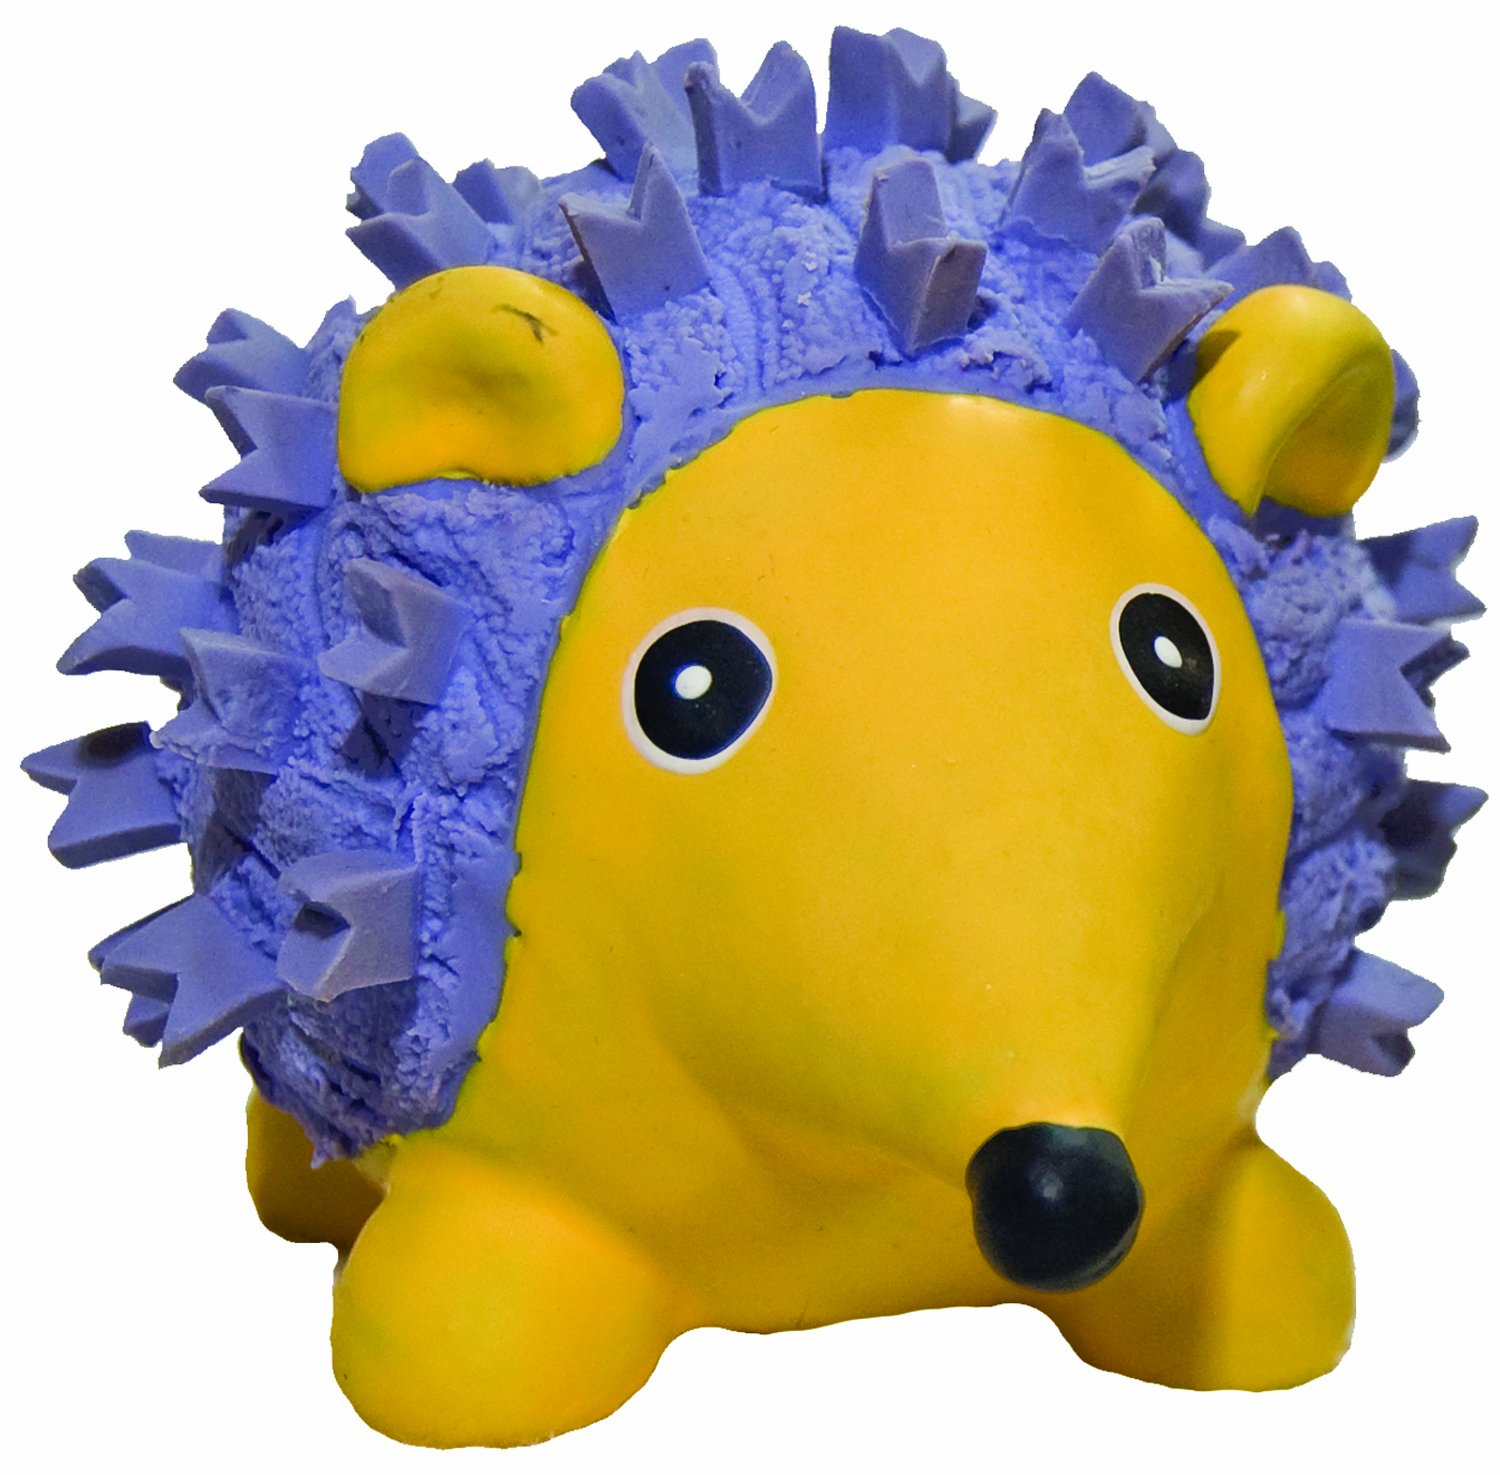 HuggleHounds Ruff-Tex Squeaky Tough Dog Chew Toy All Natural, Hedgehog, Large by HuggleHounds (Image #1)